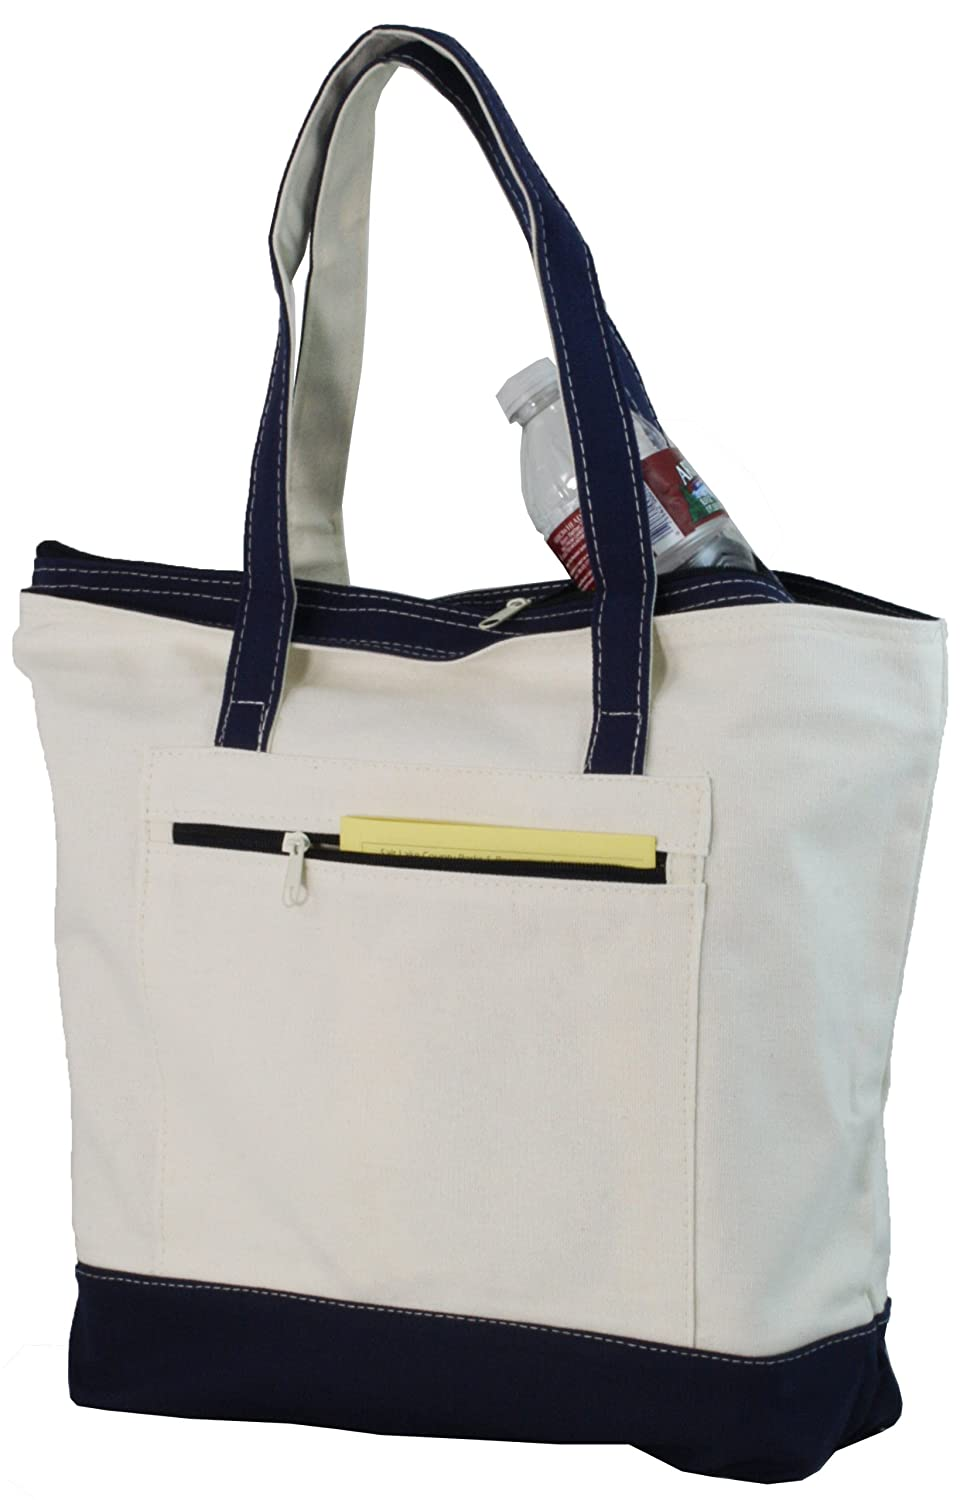 Canvas tote bags on wheels - Canvas Tote Bags On Wheels 42